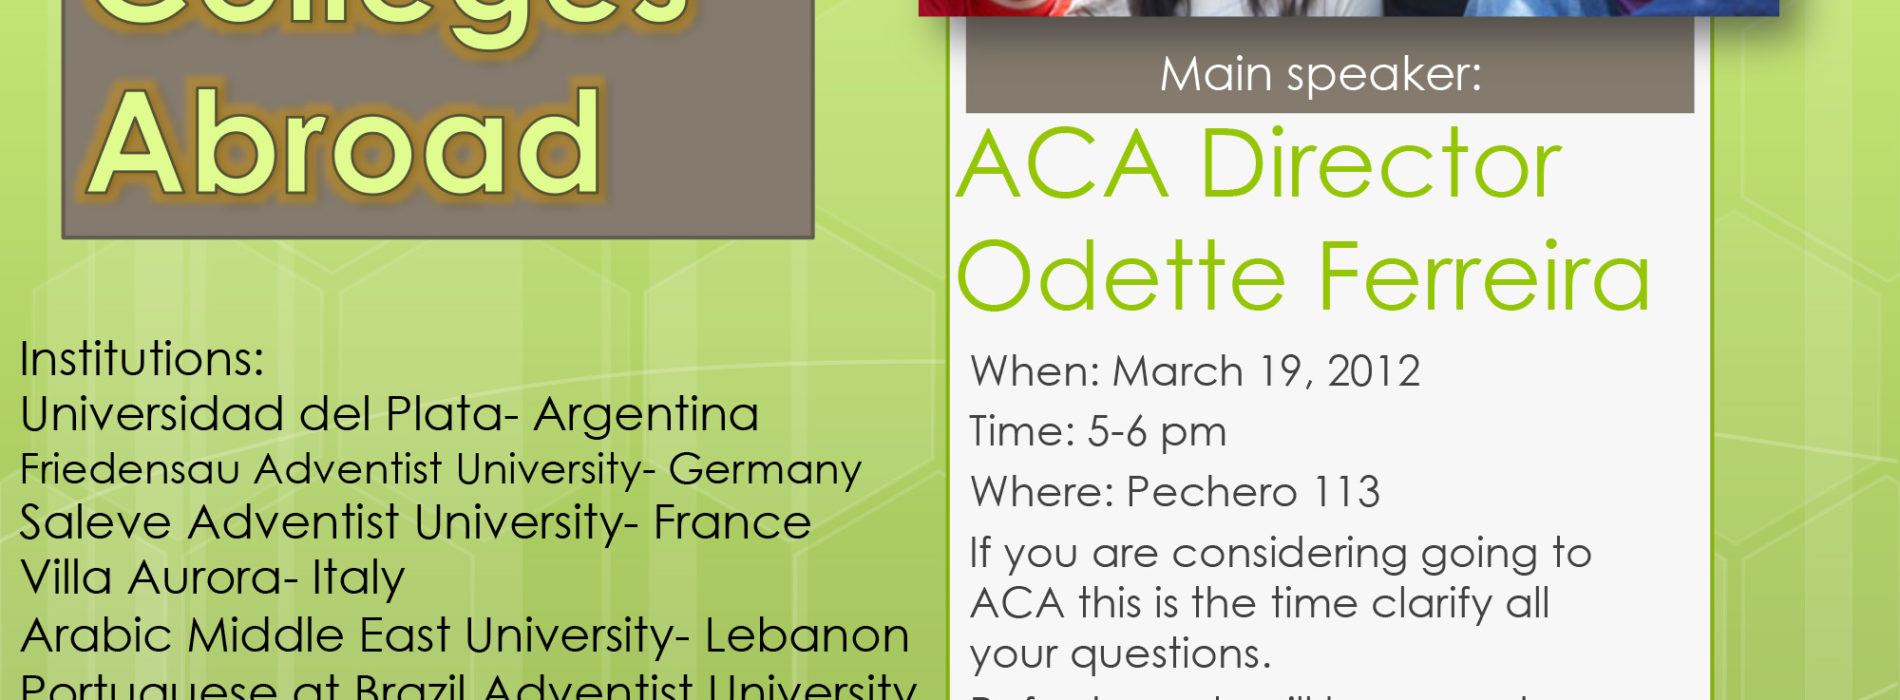 ACA Meeting Set for March 19